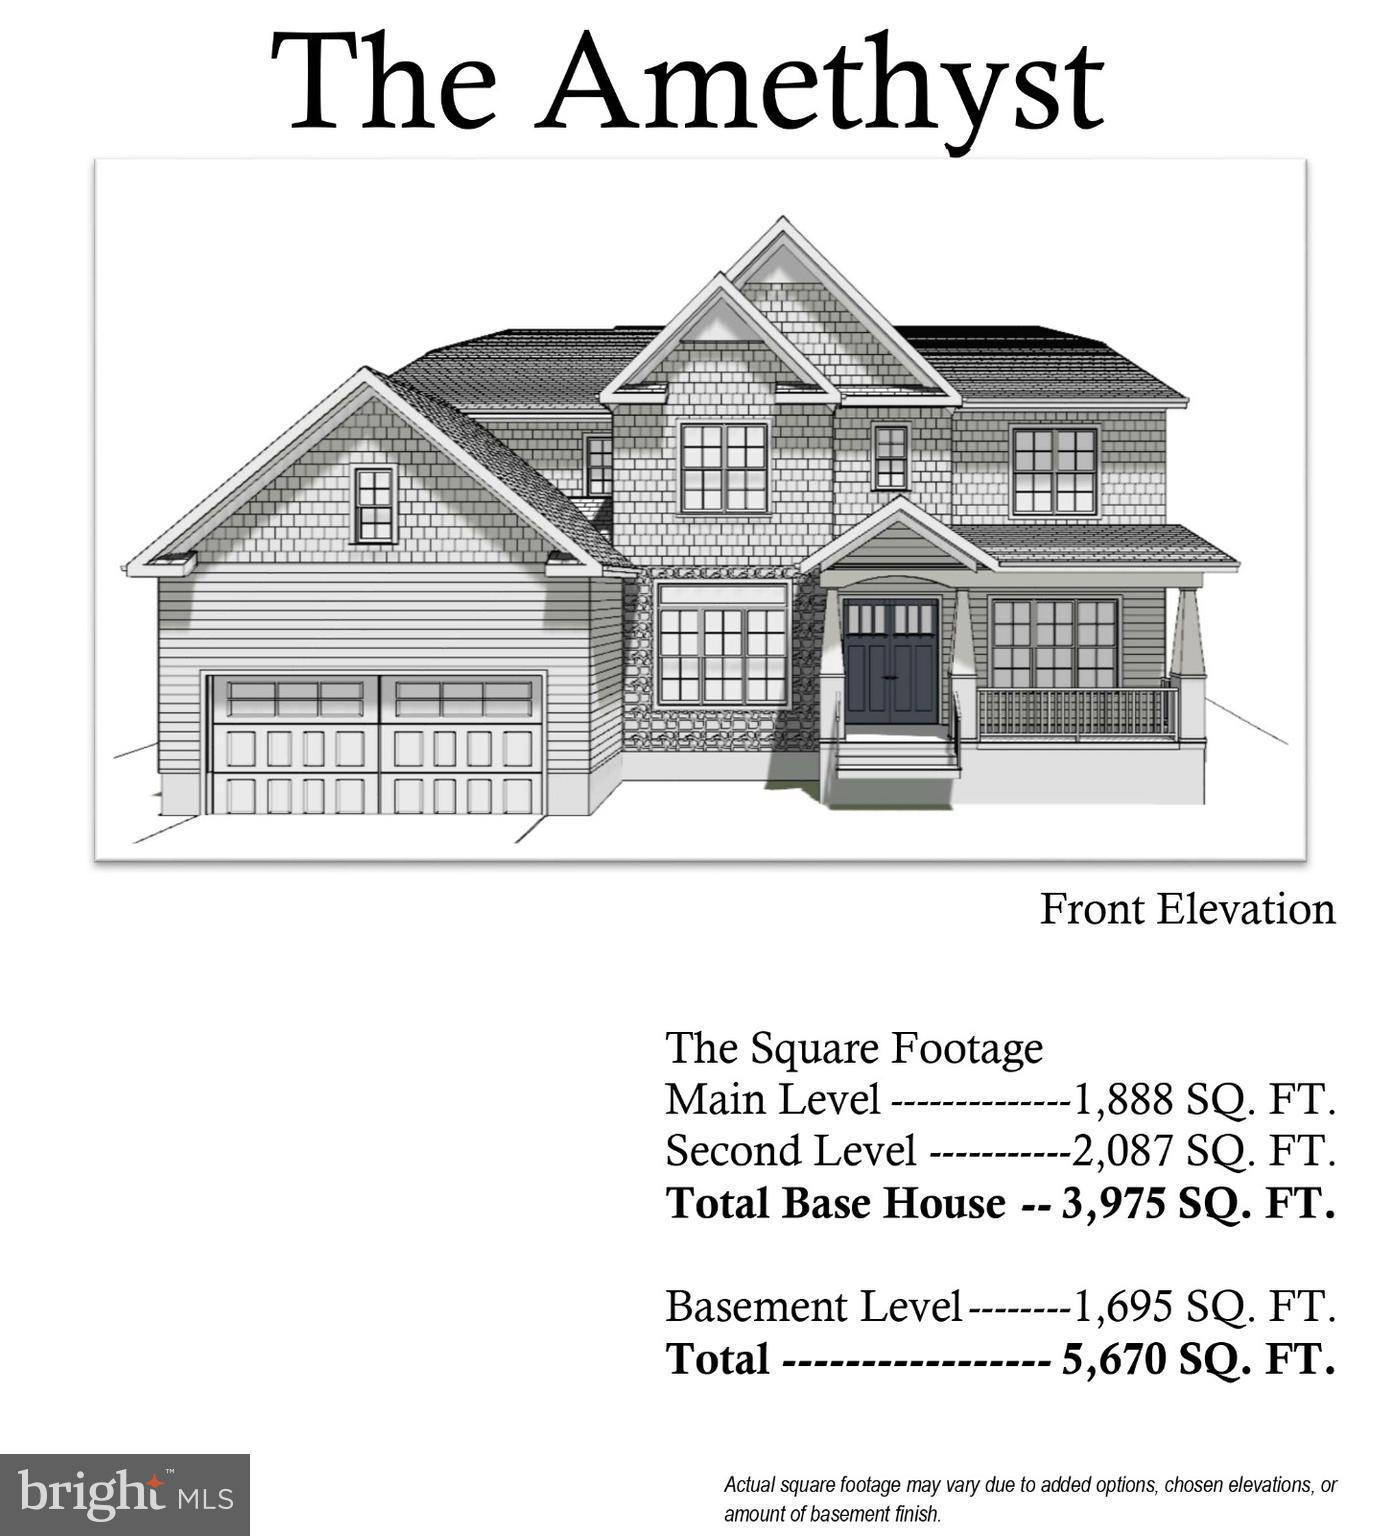 New community of 4 luxury homes! 6 floor plans available-From 3900 to 9300 sqft!Gorgeous Amethyst model with 4 bed 3.5 baths 2 cars shown in the listing. Gallery kitchen, granite counter, stainless Appliances.Hardwood floor.July special $35,000 incentive toward finished basement! Hurry! Perfect location inside 495. Minutes to 495,395.